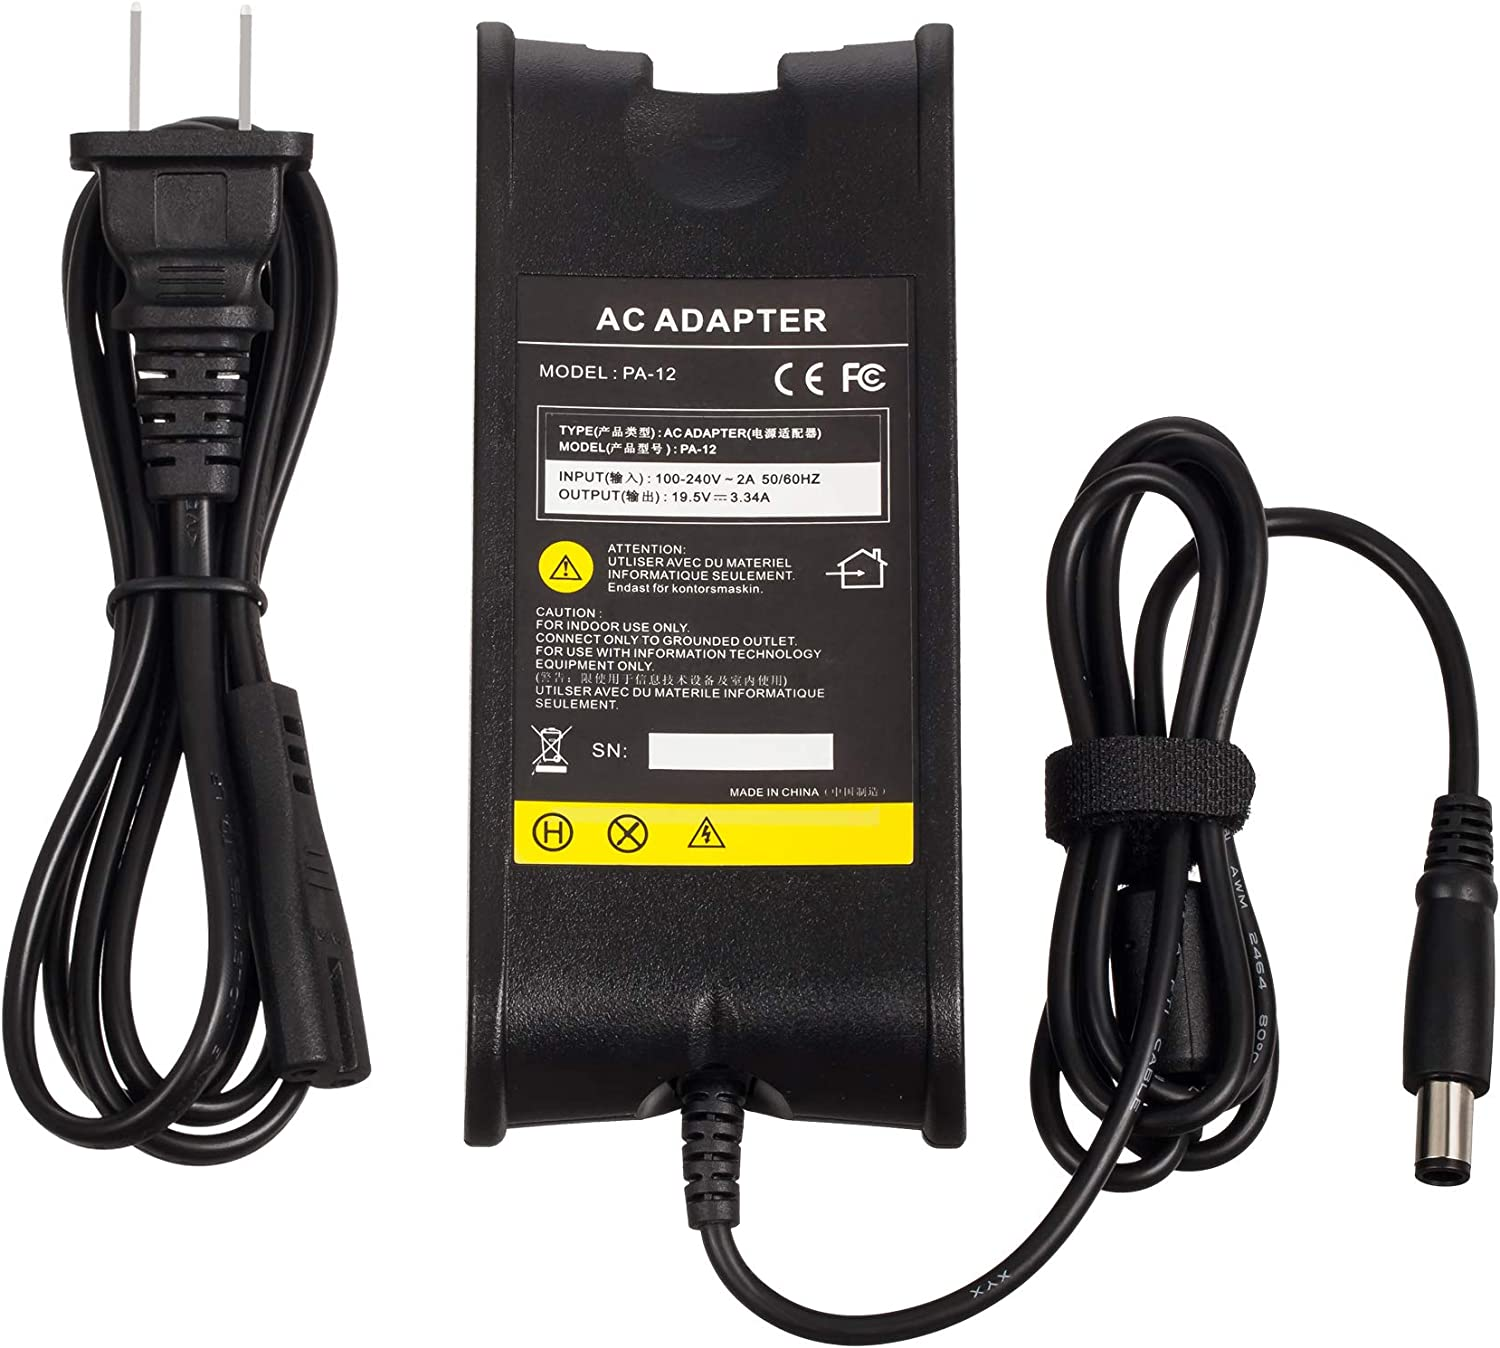 65W 19.5V 3.34A Replacement AC Power Adapter Laptop Charger for Dell Inspiron 1150, 11z, 13, 1320, 1320n, 14, 1410, 1420, 1425, 1427, 1440 and More